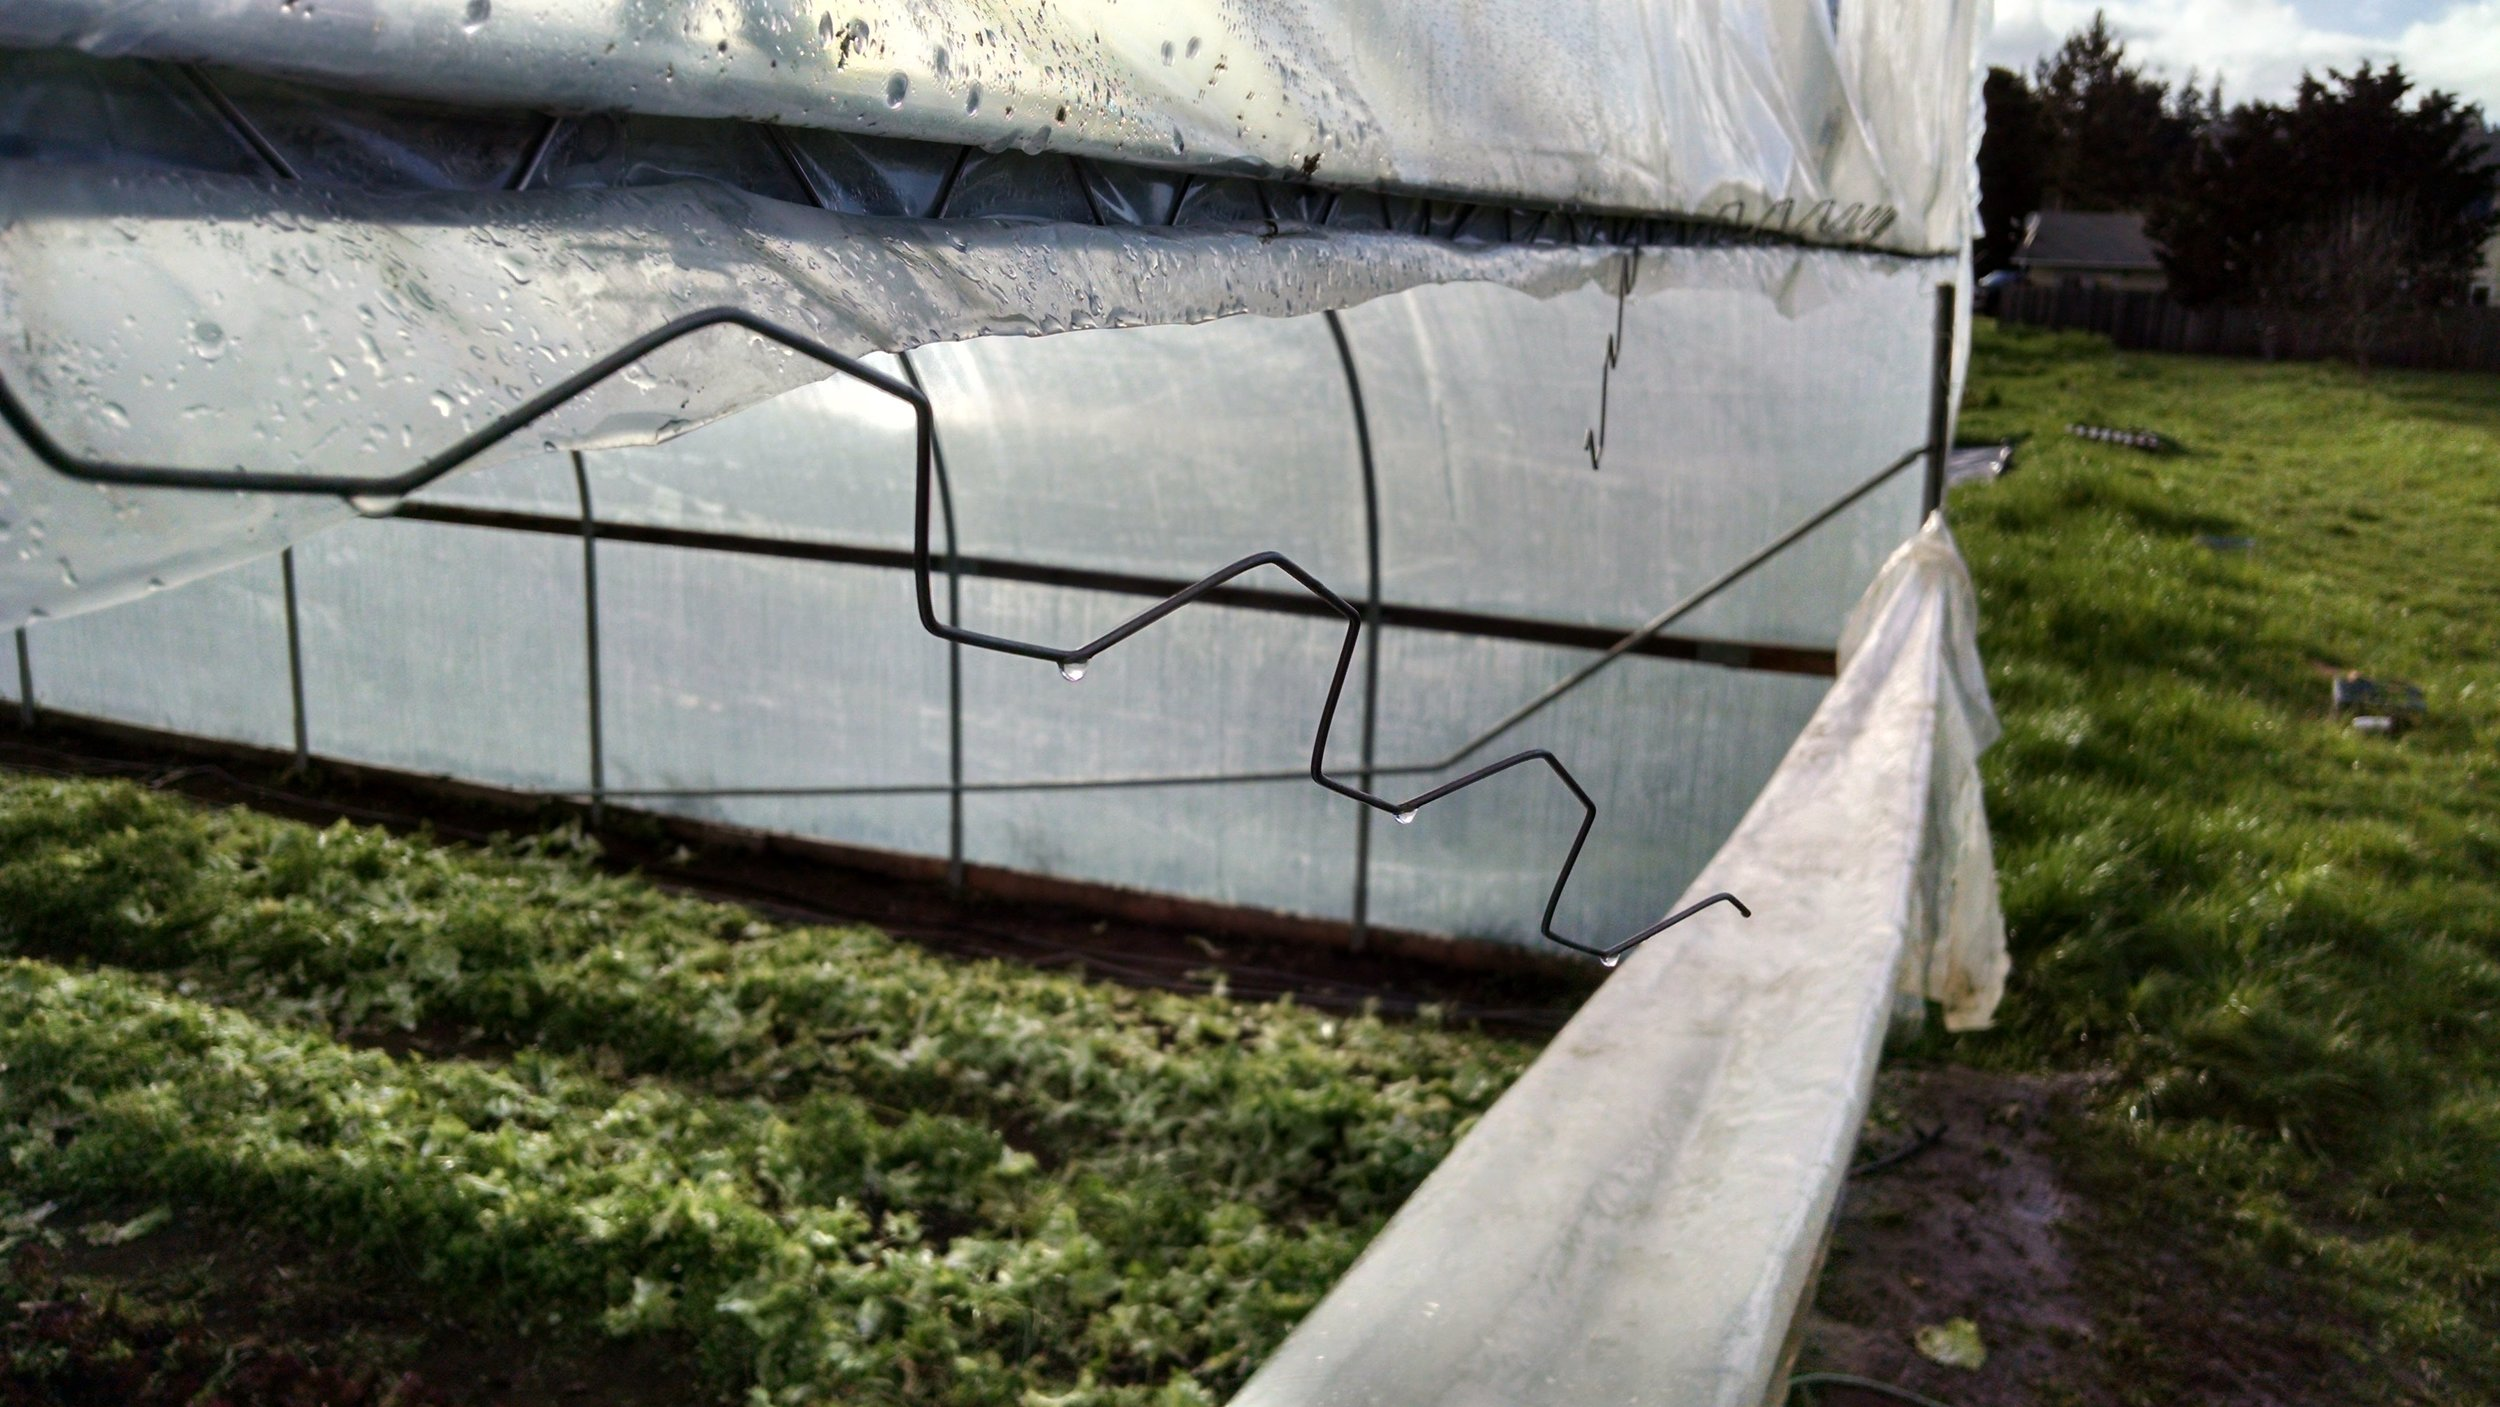 Putting the greenhouse door back in place after escarole harvest